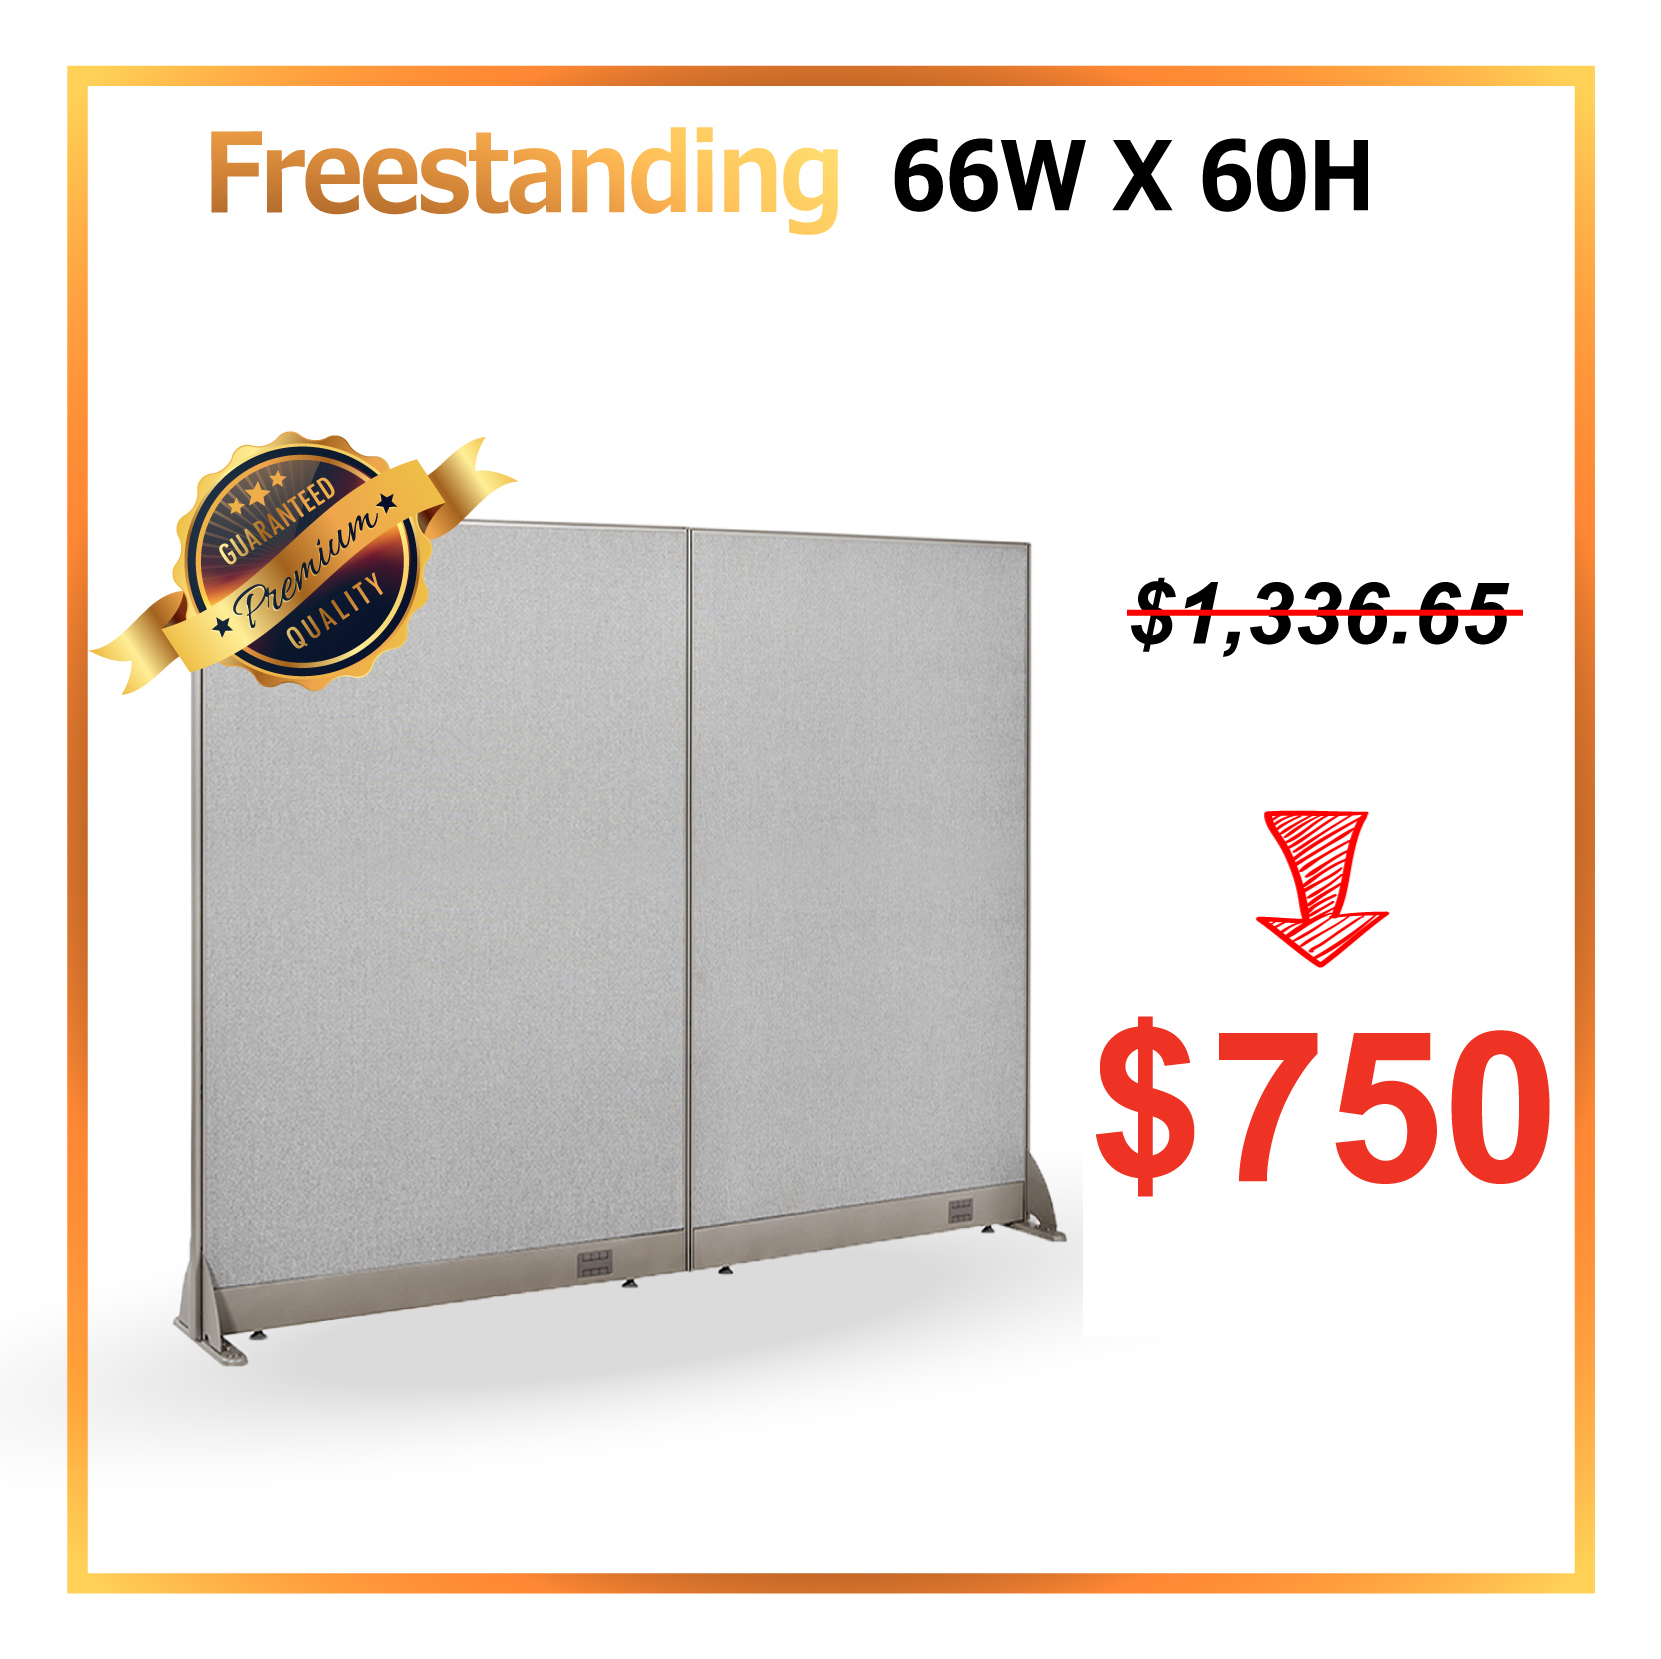 [JULY Special] GOF Office Freestanding Partition Room divider Wall divider Wall panel Office Wall (66 X 60)